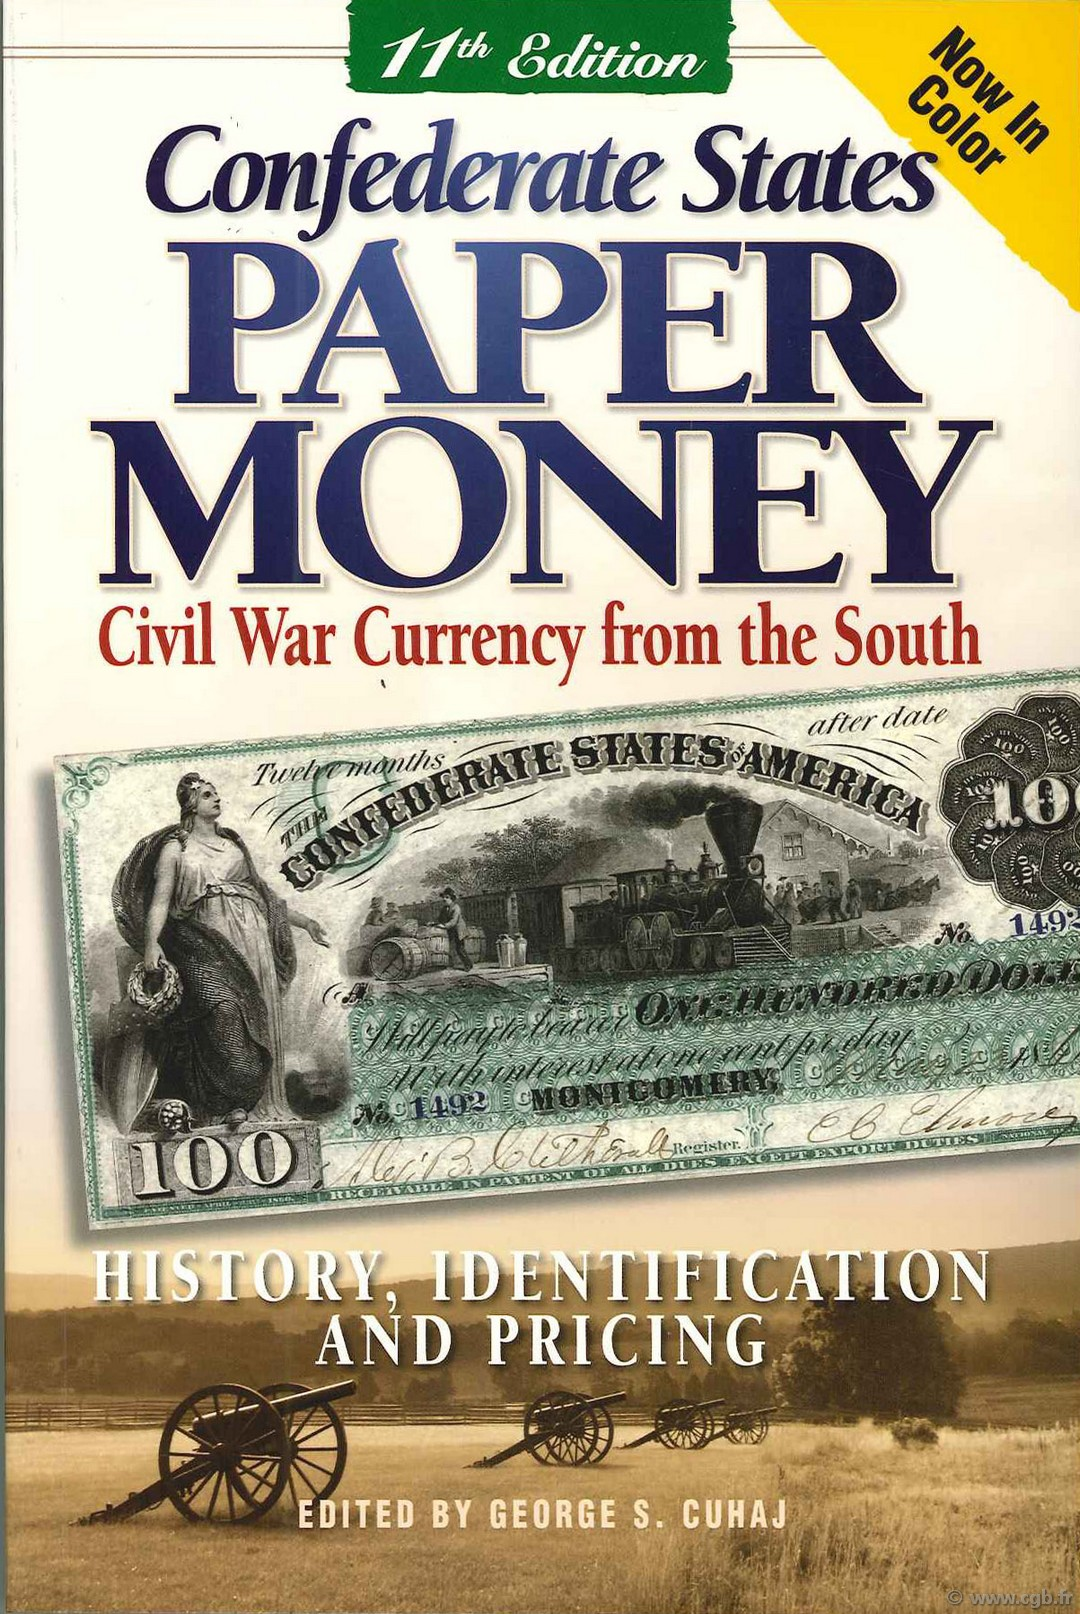 Confederate states paper money : Civil War Currency from the South 11th edition SLABAUGH Arlie R., CUHAJ George S.